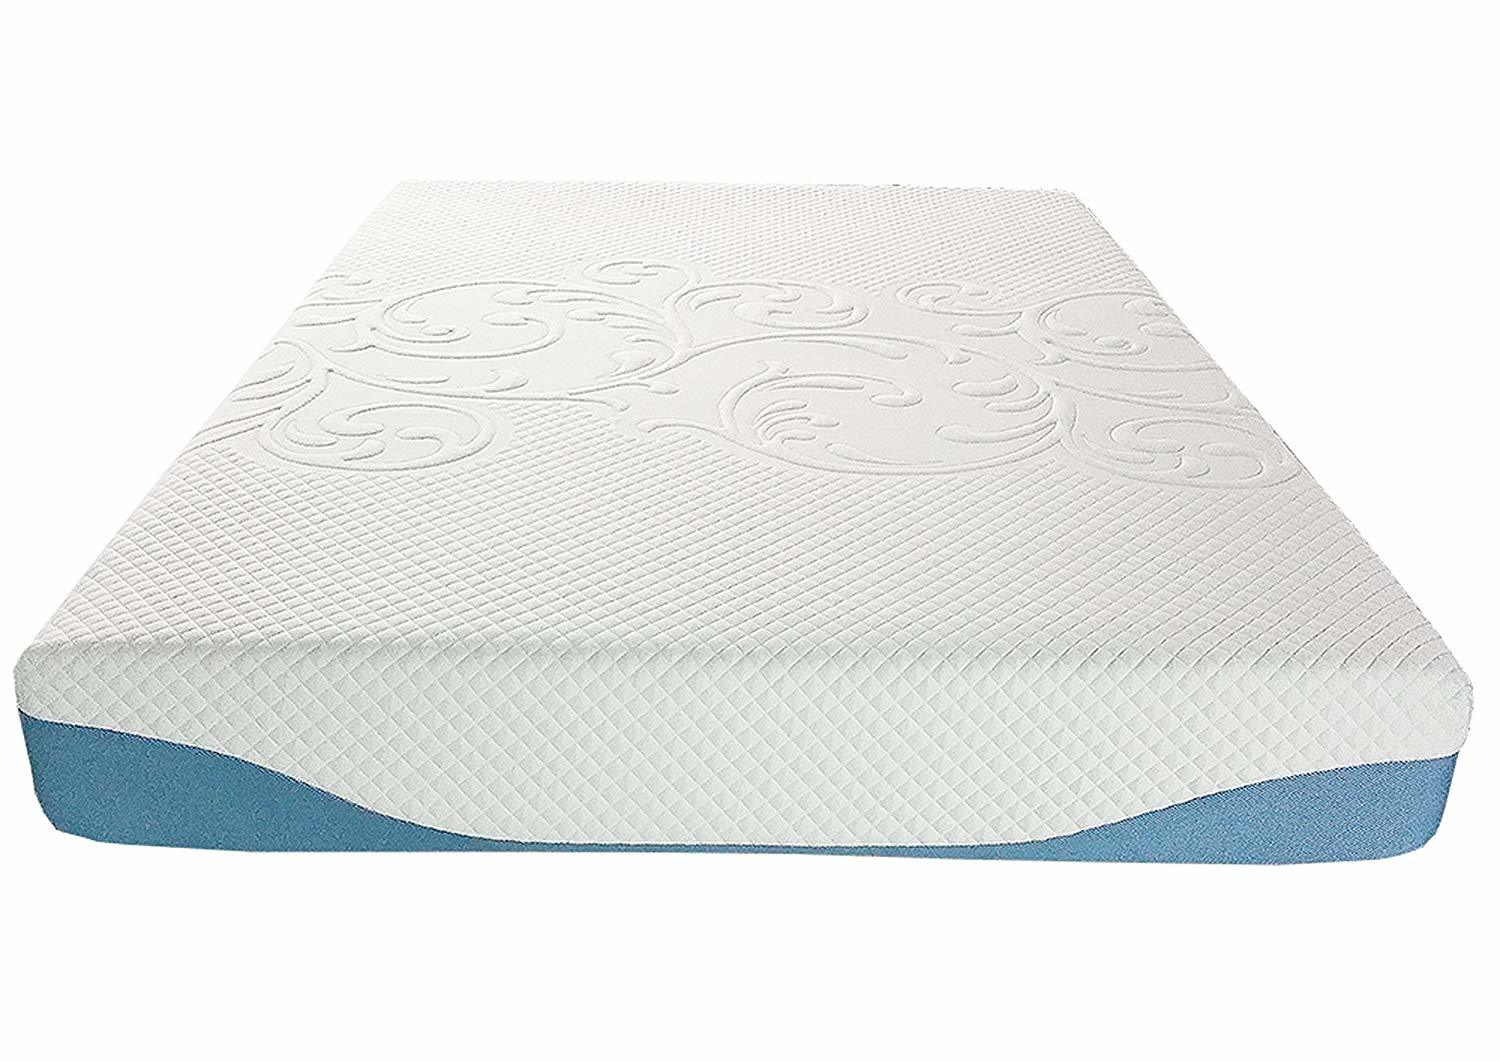 Queen Gel Infused Ventilation Memory Foam Mattress